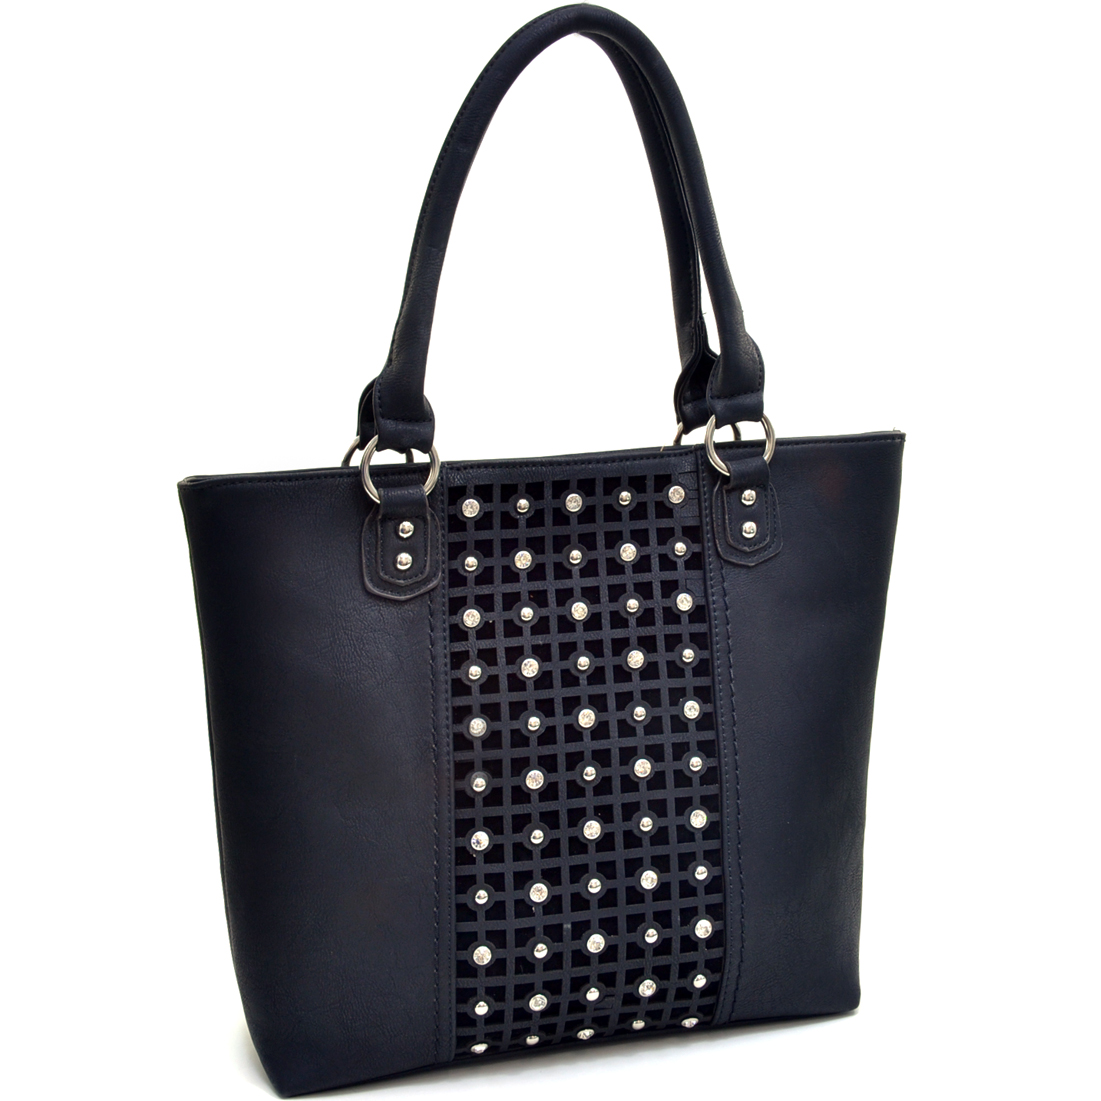 Rhinestone Studded Matrix Pattern Tote with Removable Shoulder Strap